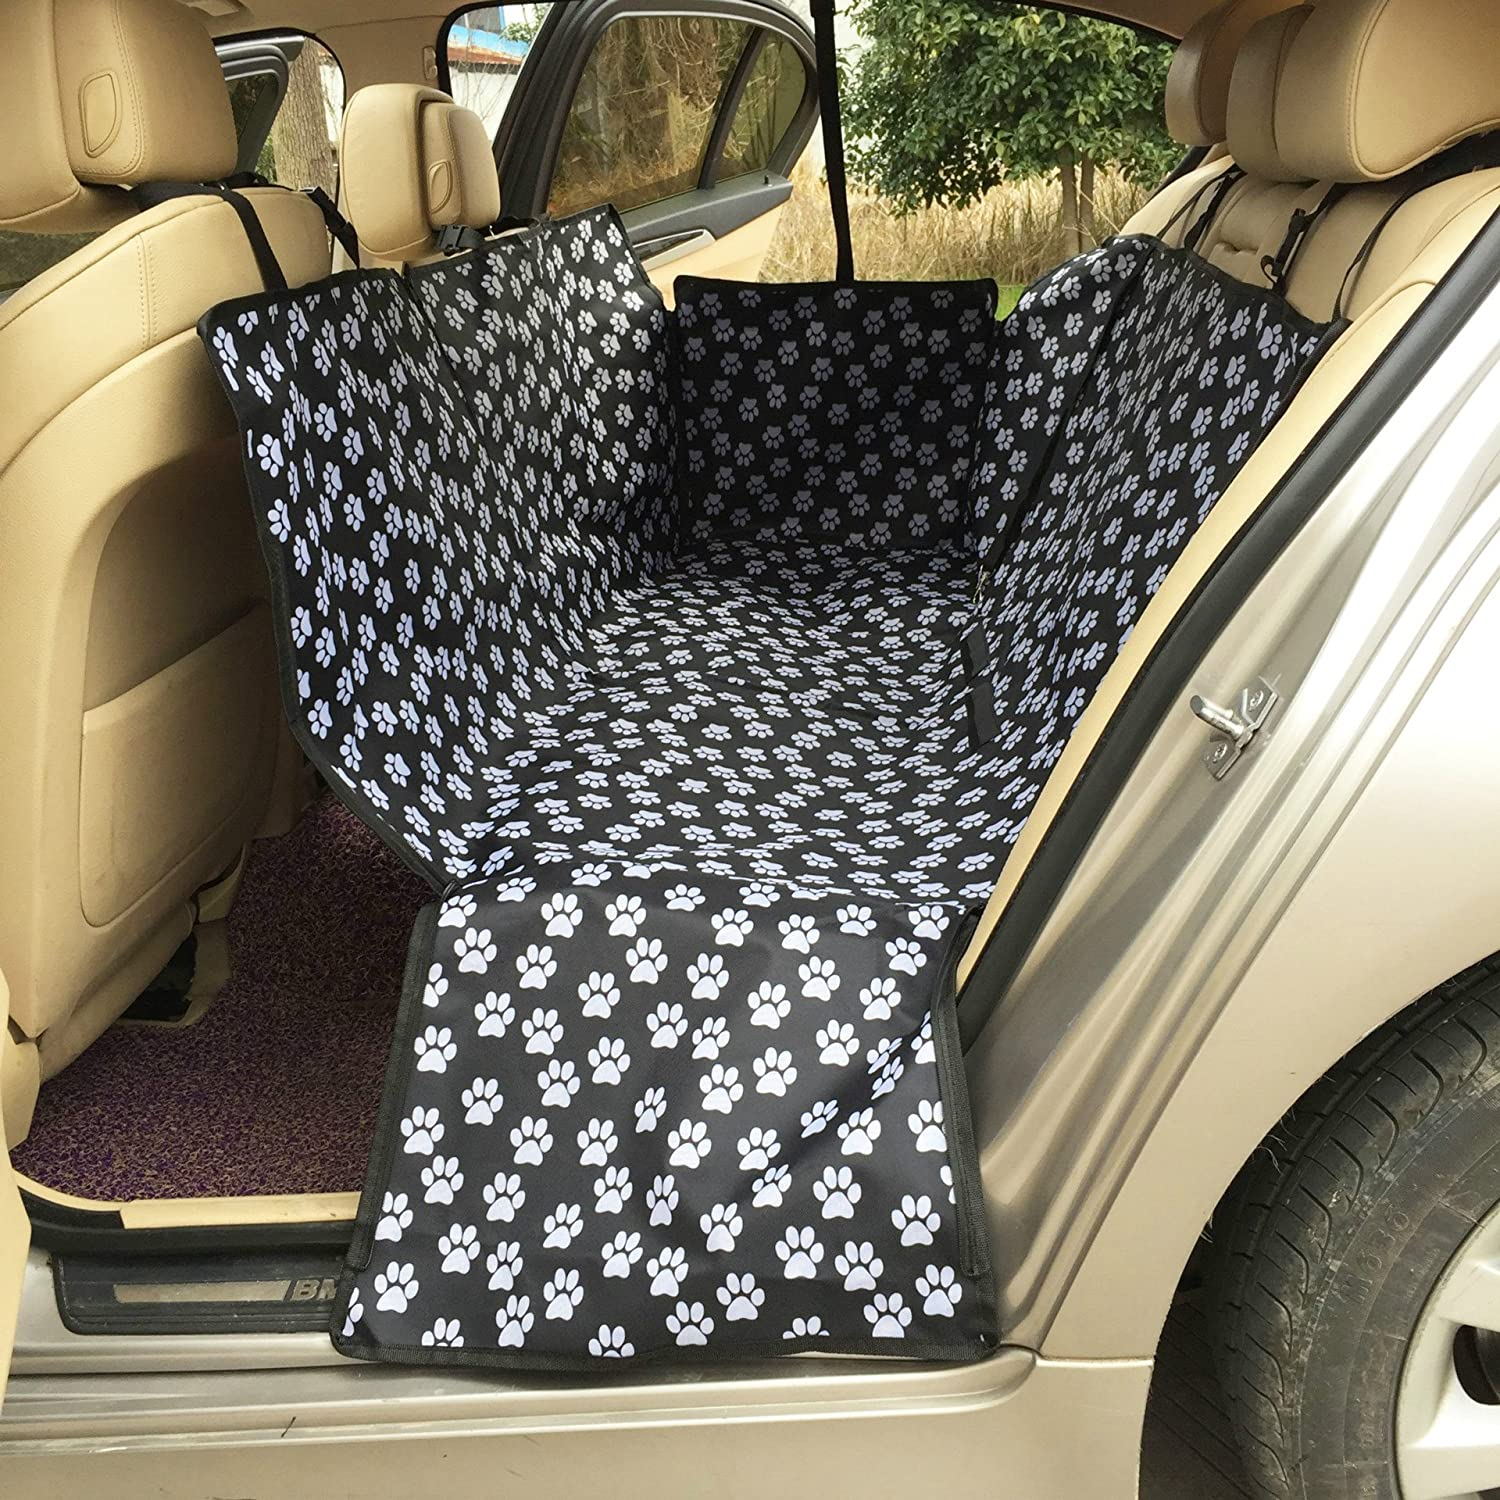 Waterproof & Nonslip Pet Car Back Seat Cover Hammock Bench Seat Predector For Most Cars